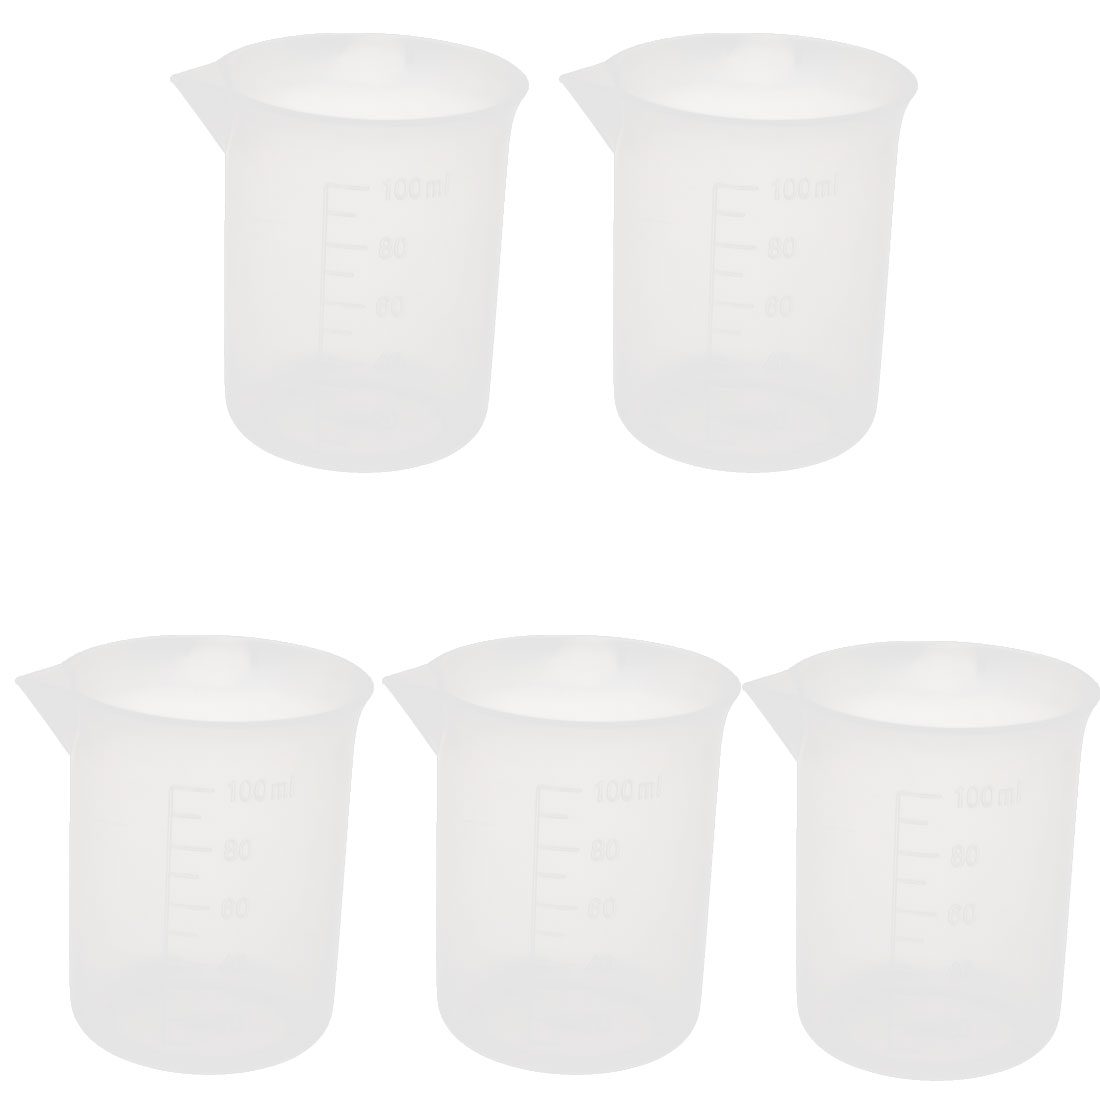 5pcs 100ml Laboratory Plastic Liquid Container Measuring Cup Beaker Clear